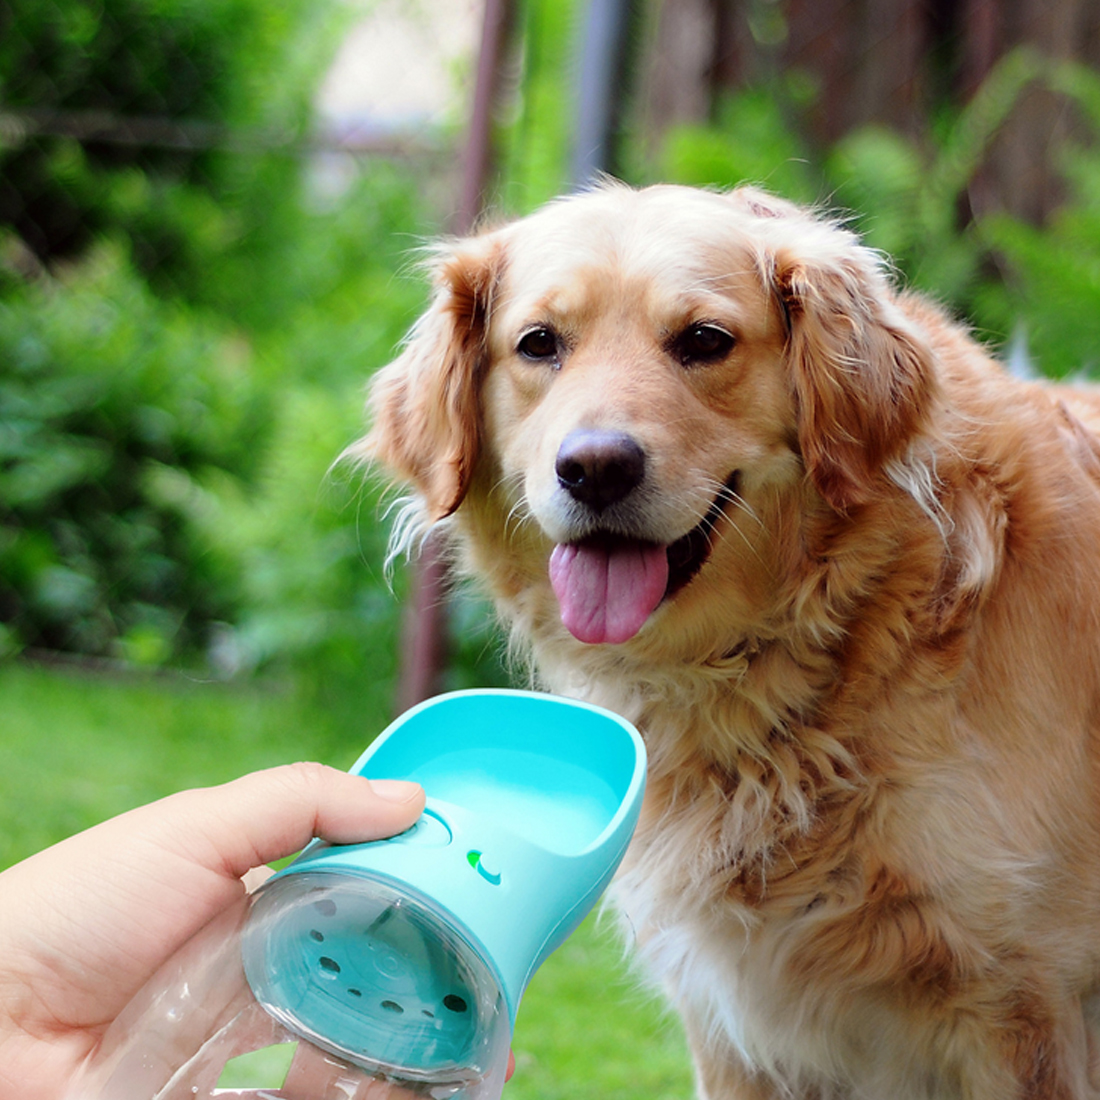 350ml Portable Pet Dog Water Bottle Travel Dog Bowl Cups: 350ML Small Medium Large Dogs Portable Pet Dog Water